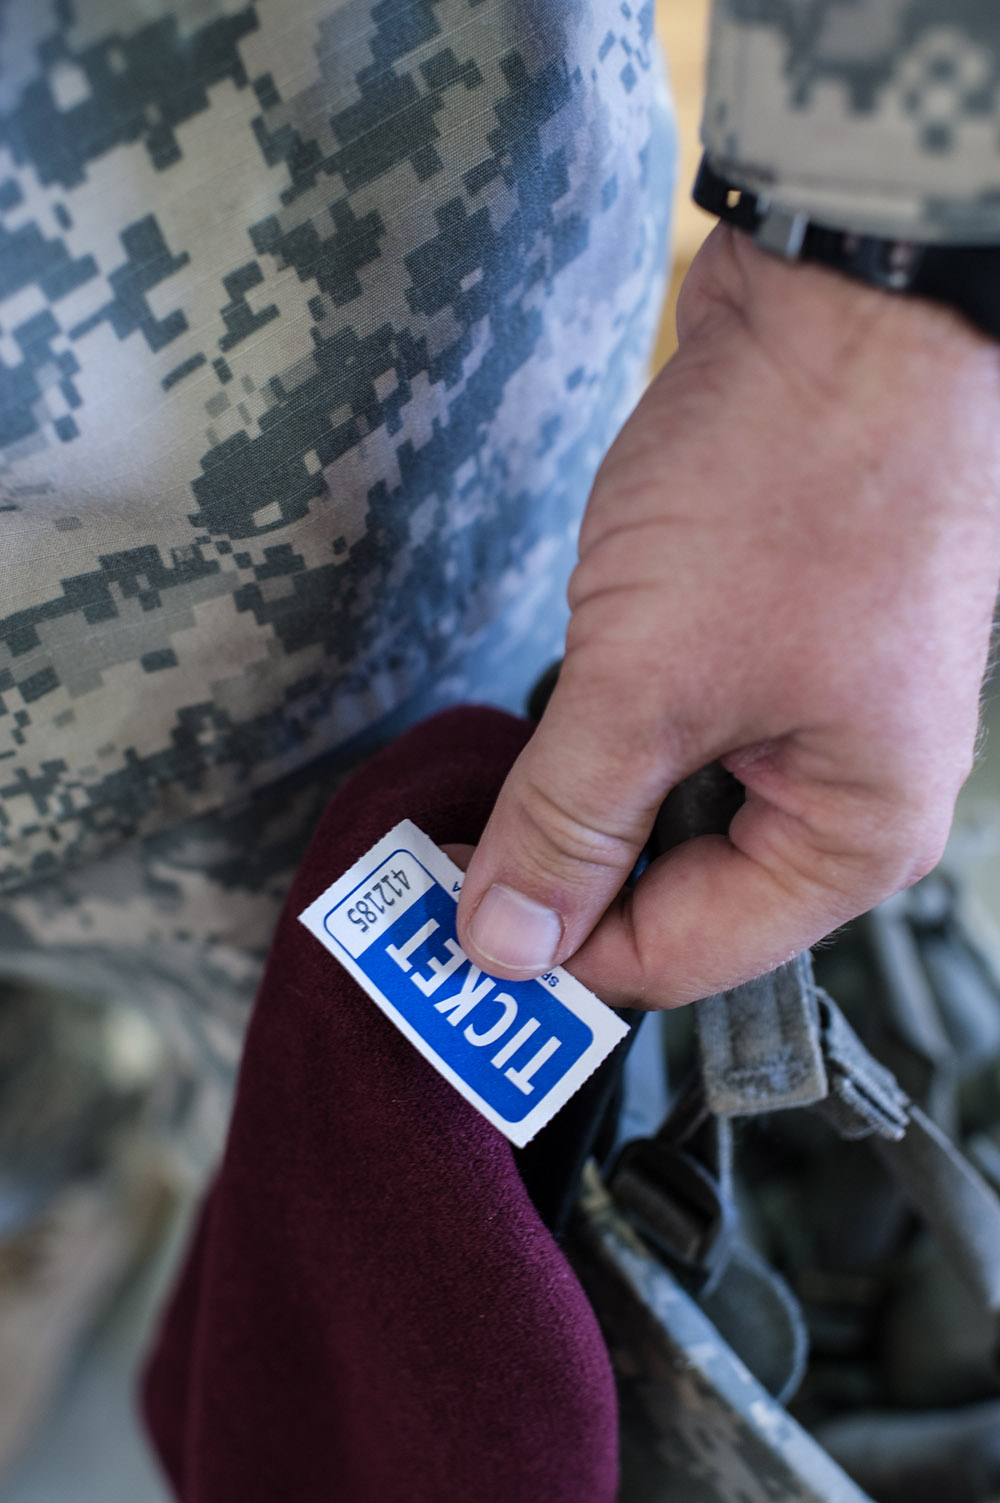 Second Place | Multiple PhotosTimothy HaleA soldier keeps his ticket at the ready in the hopes of hearing his number called during the 16th Annual Randy Oler Memorial Operation Toy Drop, at Green Ramp, Pope Army Airfield, Fort Bragg, N.C., Dec. 6, 2013. The first phase of Toy Drop includes bringing in an unwrapped toy to receive a ticket. The tickets are then randomly drawn to earn the seat for tomorrow's airborne operation at Sicily Drop Zone. Last year, Operation Toy Drop collected more than 12,000 toys which were donated to charities and organizations across North Carolina.